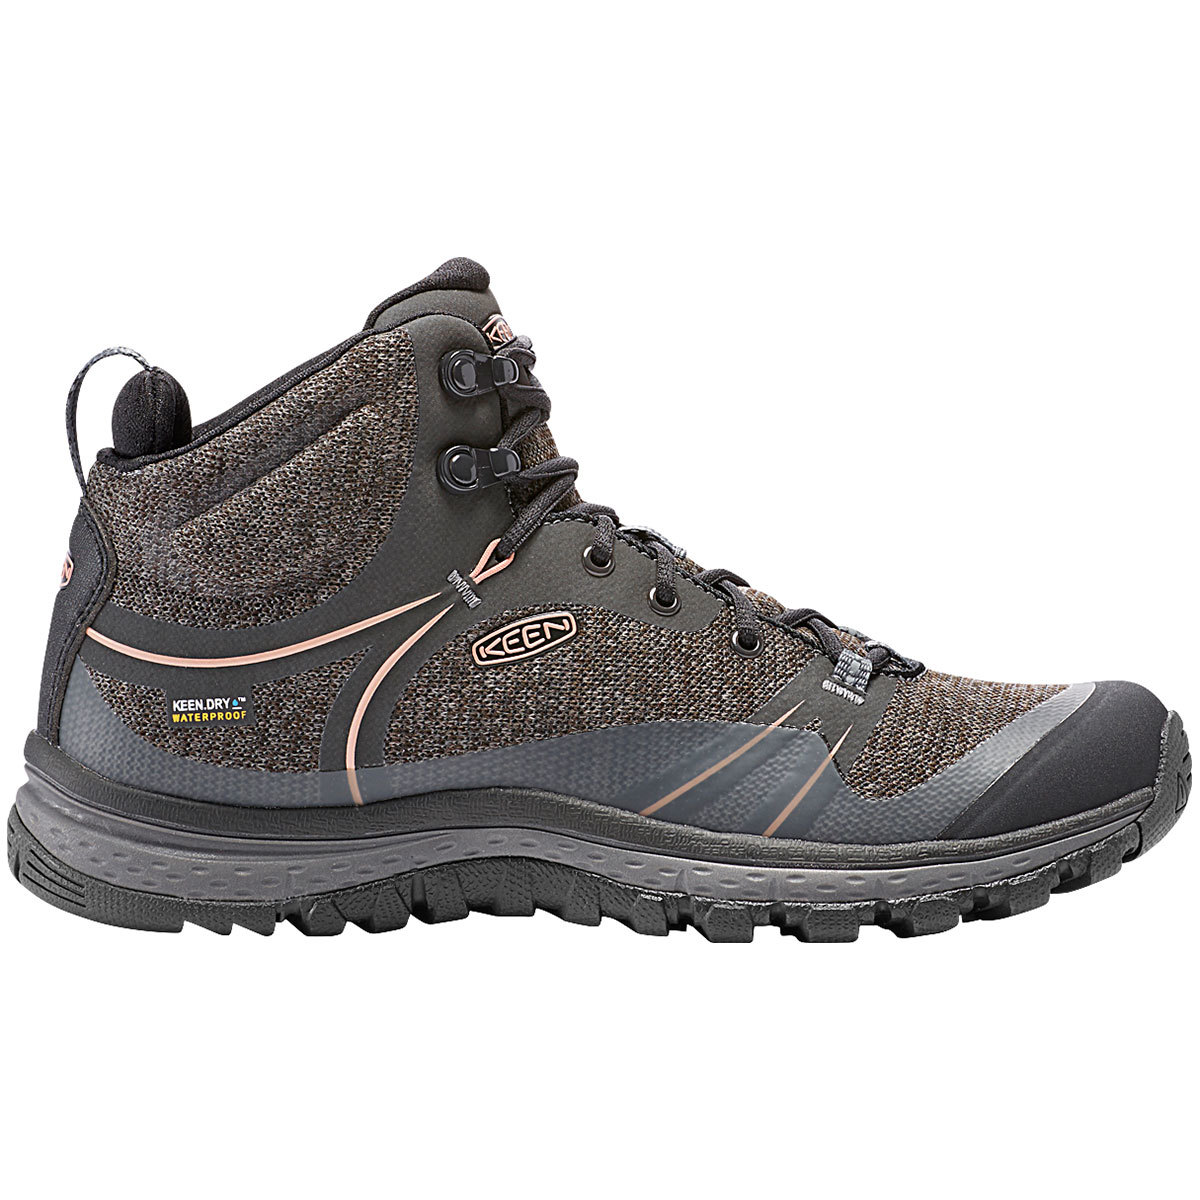 Keen Women's Terradora Mid Waterproof Hiking Boots, Raven - Black, 8